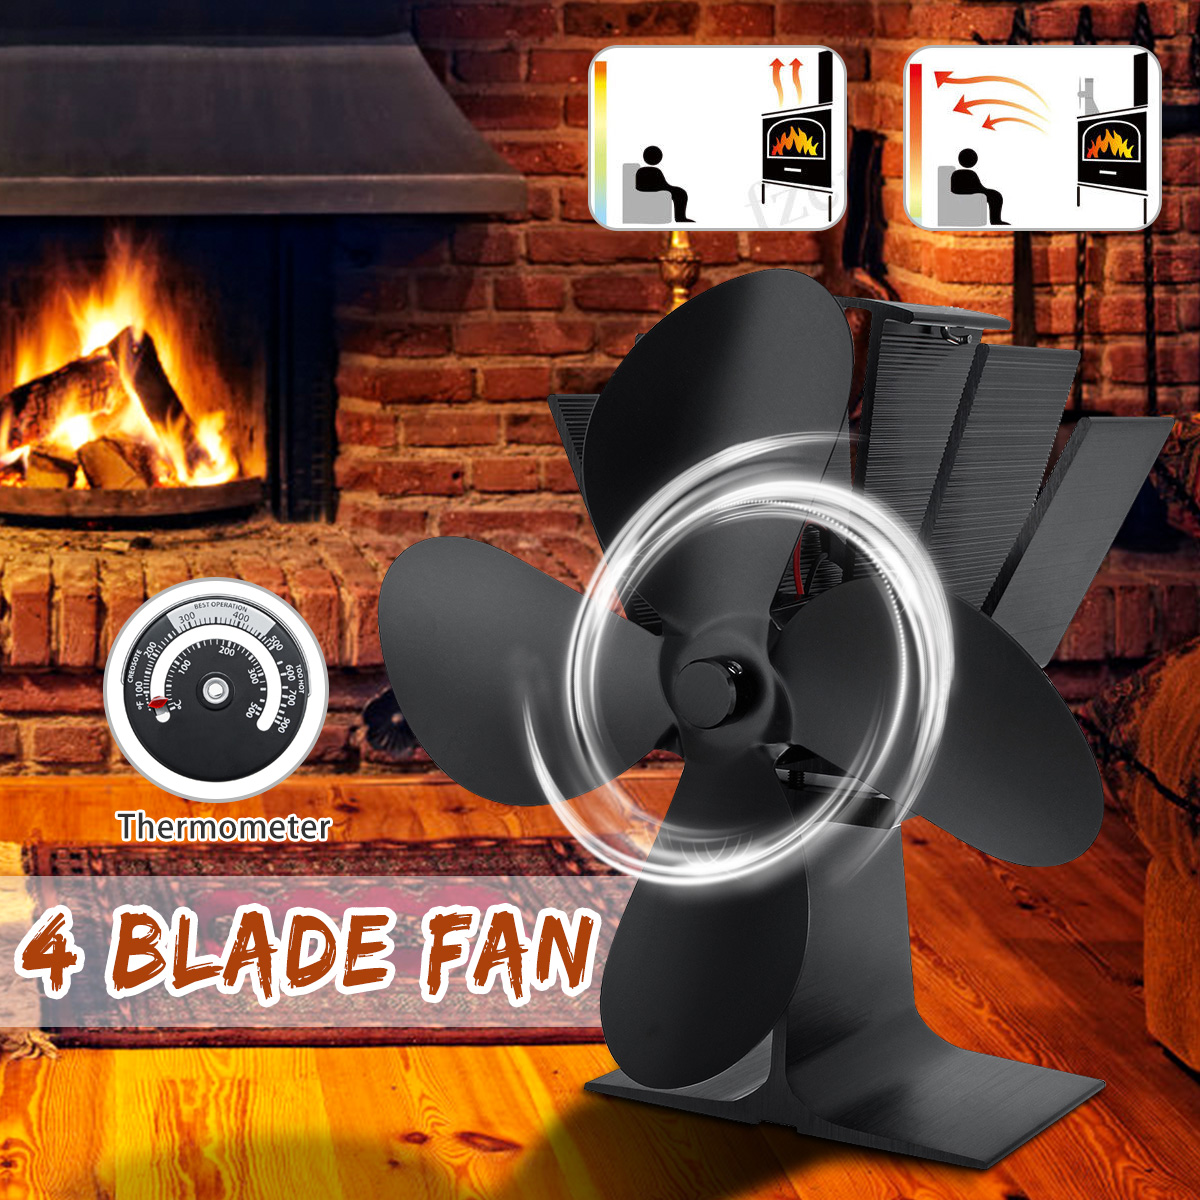 4 Blade 22.5cm Height Mini Heat Powered Stove Fan with Thermometer for Super Small Space on Wood/Log Burner/Fireplace Top4 Blade 22.5cm Height Mini Heat Powered Stove Fan with Thermometer for Super Small Space on Wood/Log Burner/Fireplace Top